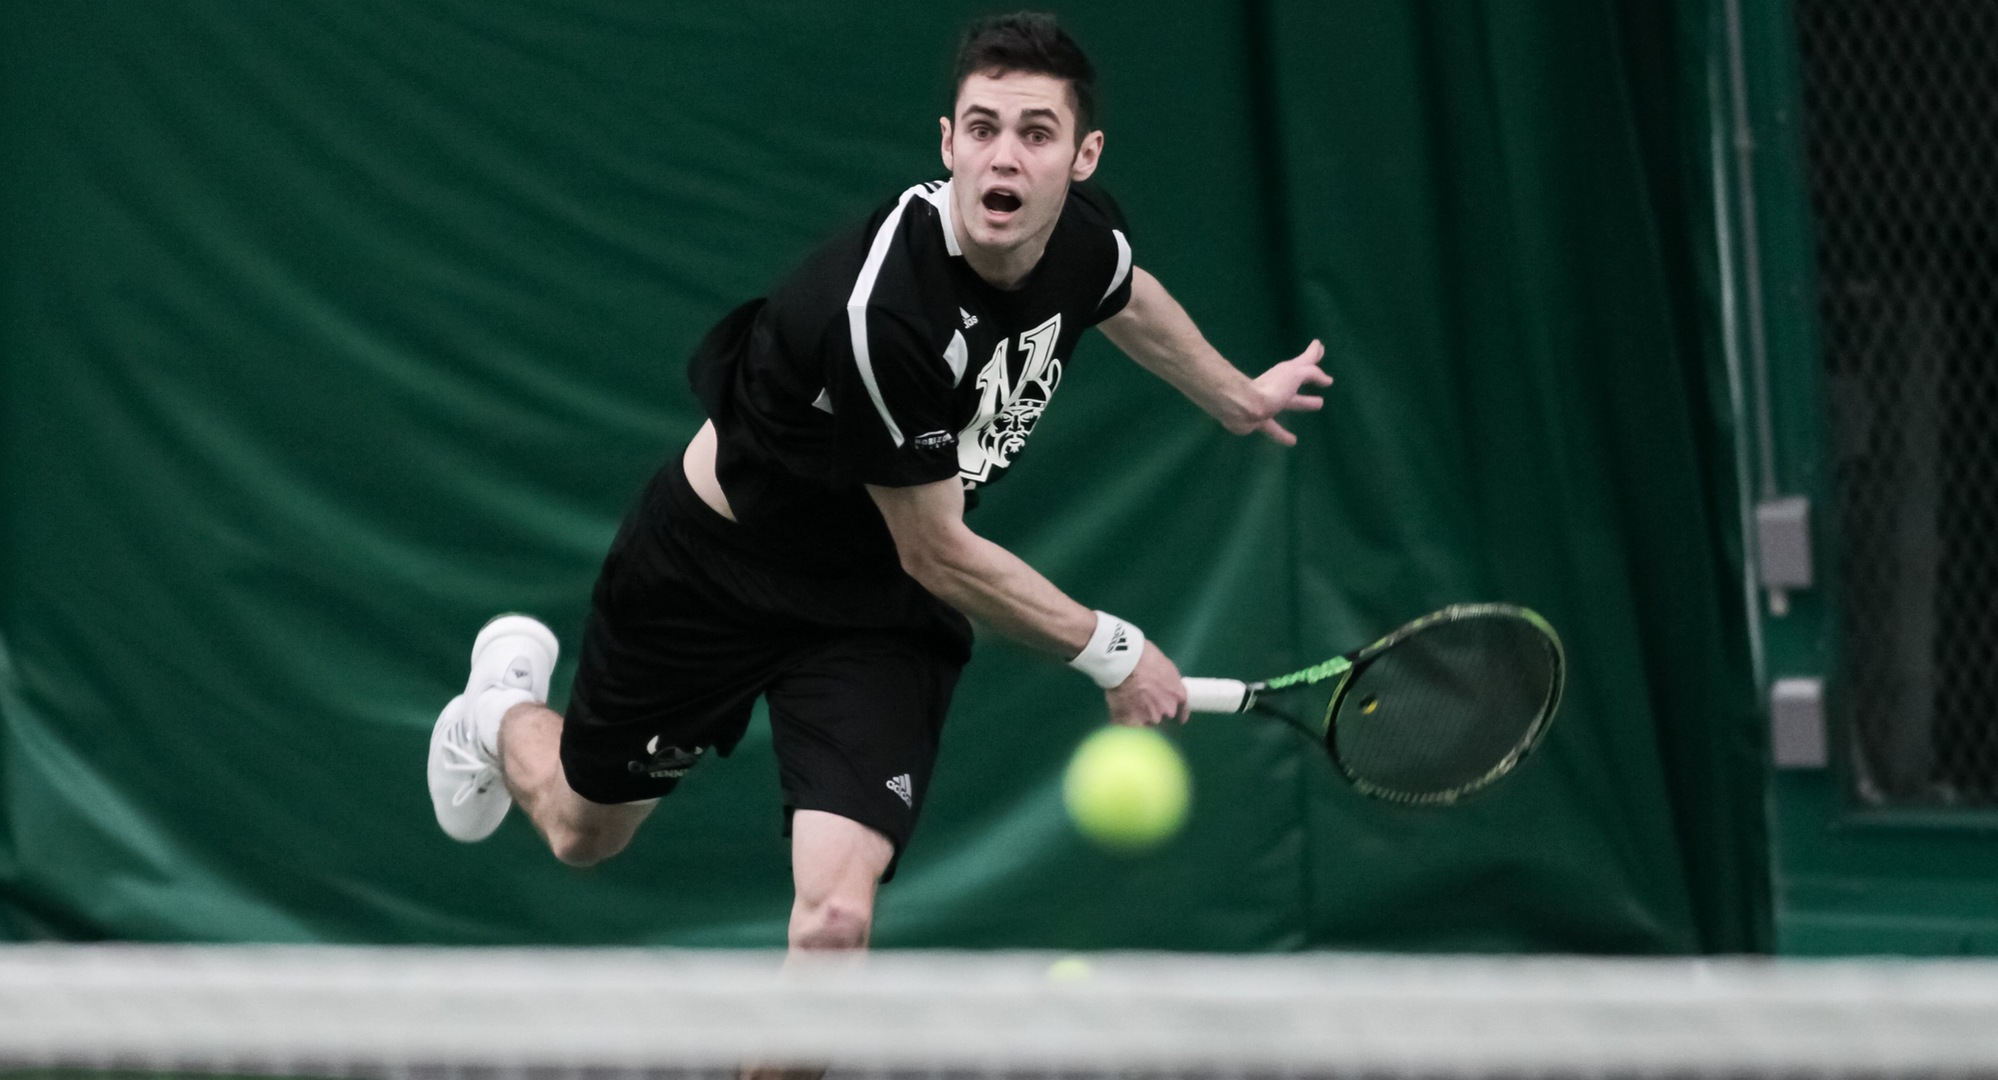 Men's Tennis Drops Doubleheader At No. 2 Ohio State To Begin Spring Season